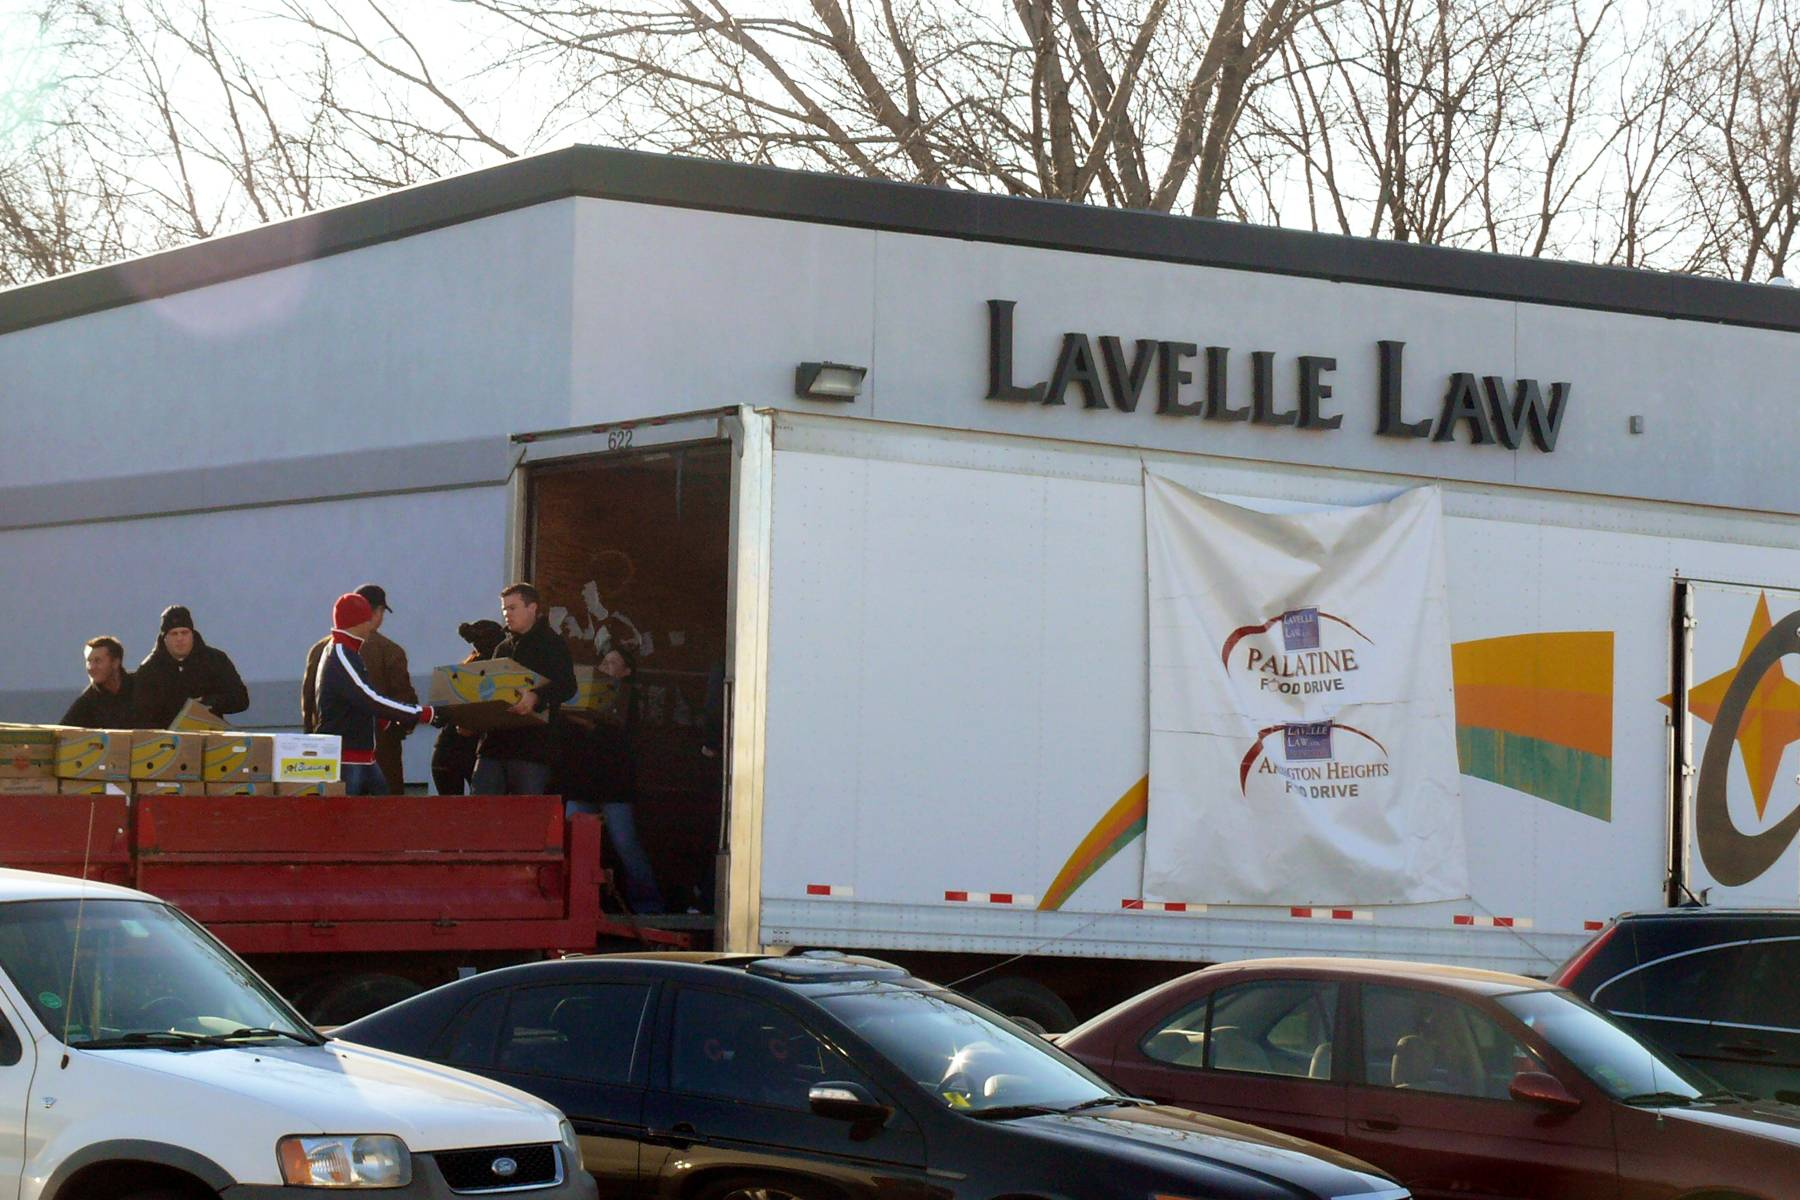 The staff and attorneys of Lavelle Law, Ltd and other volunteers will deliver the proceeds of the 9th annual Palatine Food Drive to the Palatine Township Food Pantry on November 20th.